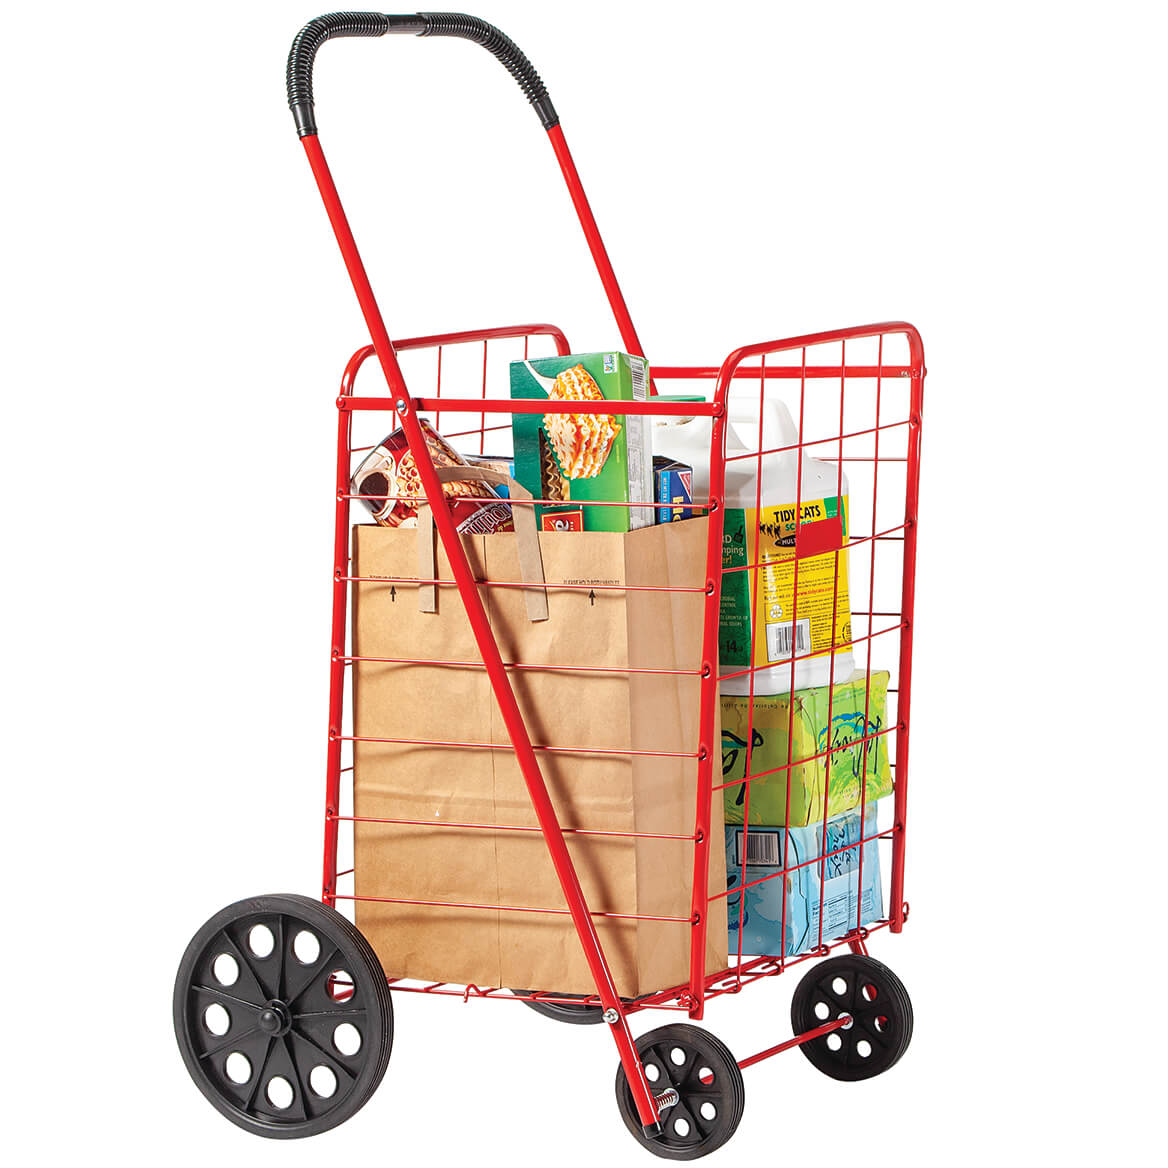 Deluxe Steel Shopping Cart                      XL-303496